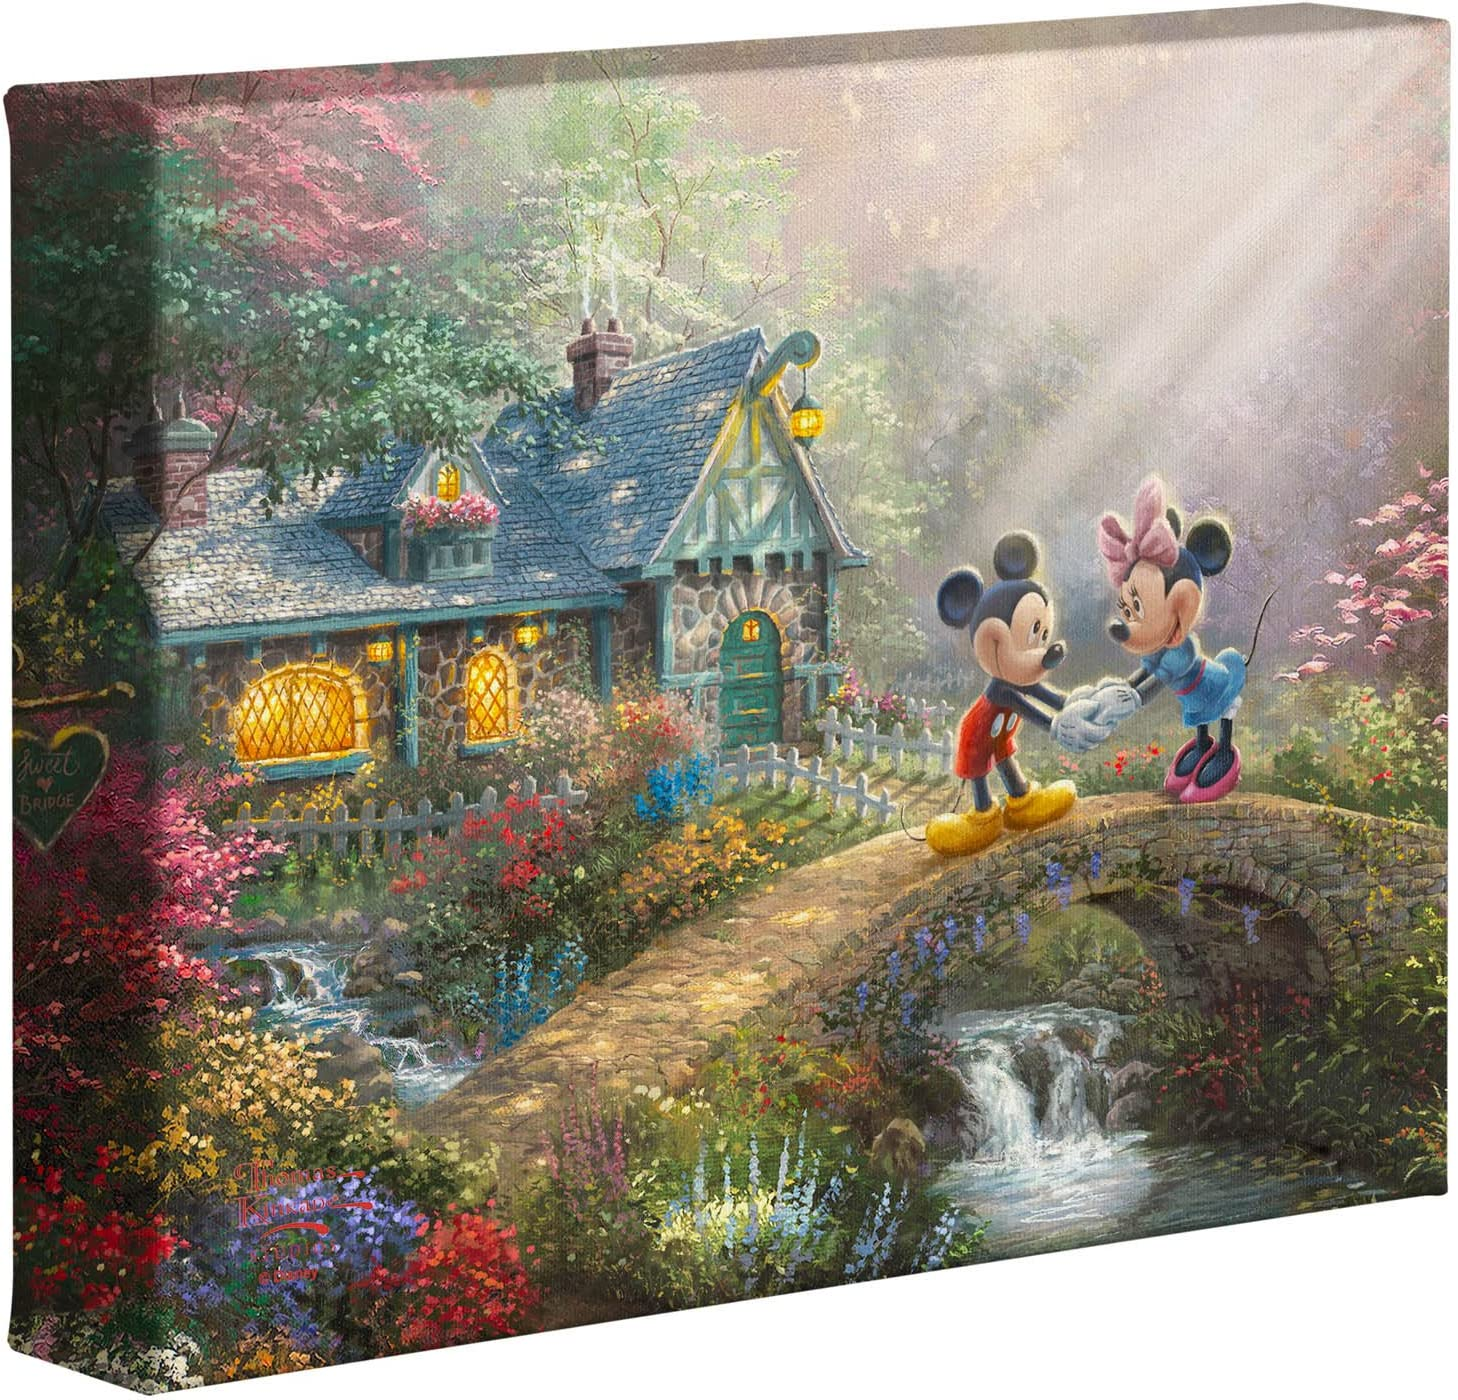 Thomas Kinkade Studios Disney's Mickey and Minnie Sweetheart Bridge 8 x 10 Gallery Wrapped Canvas